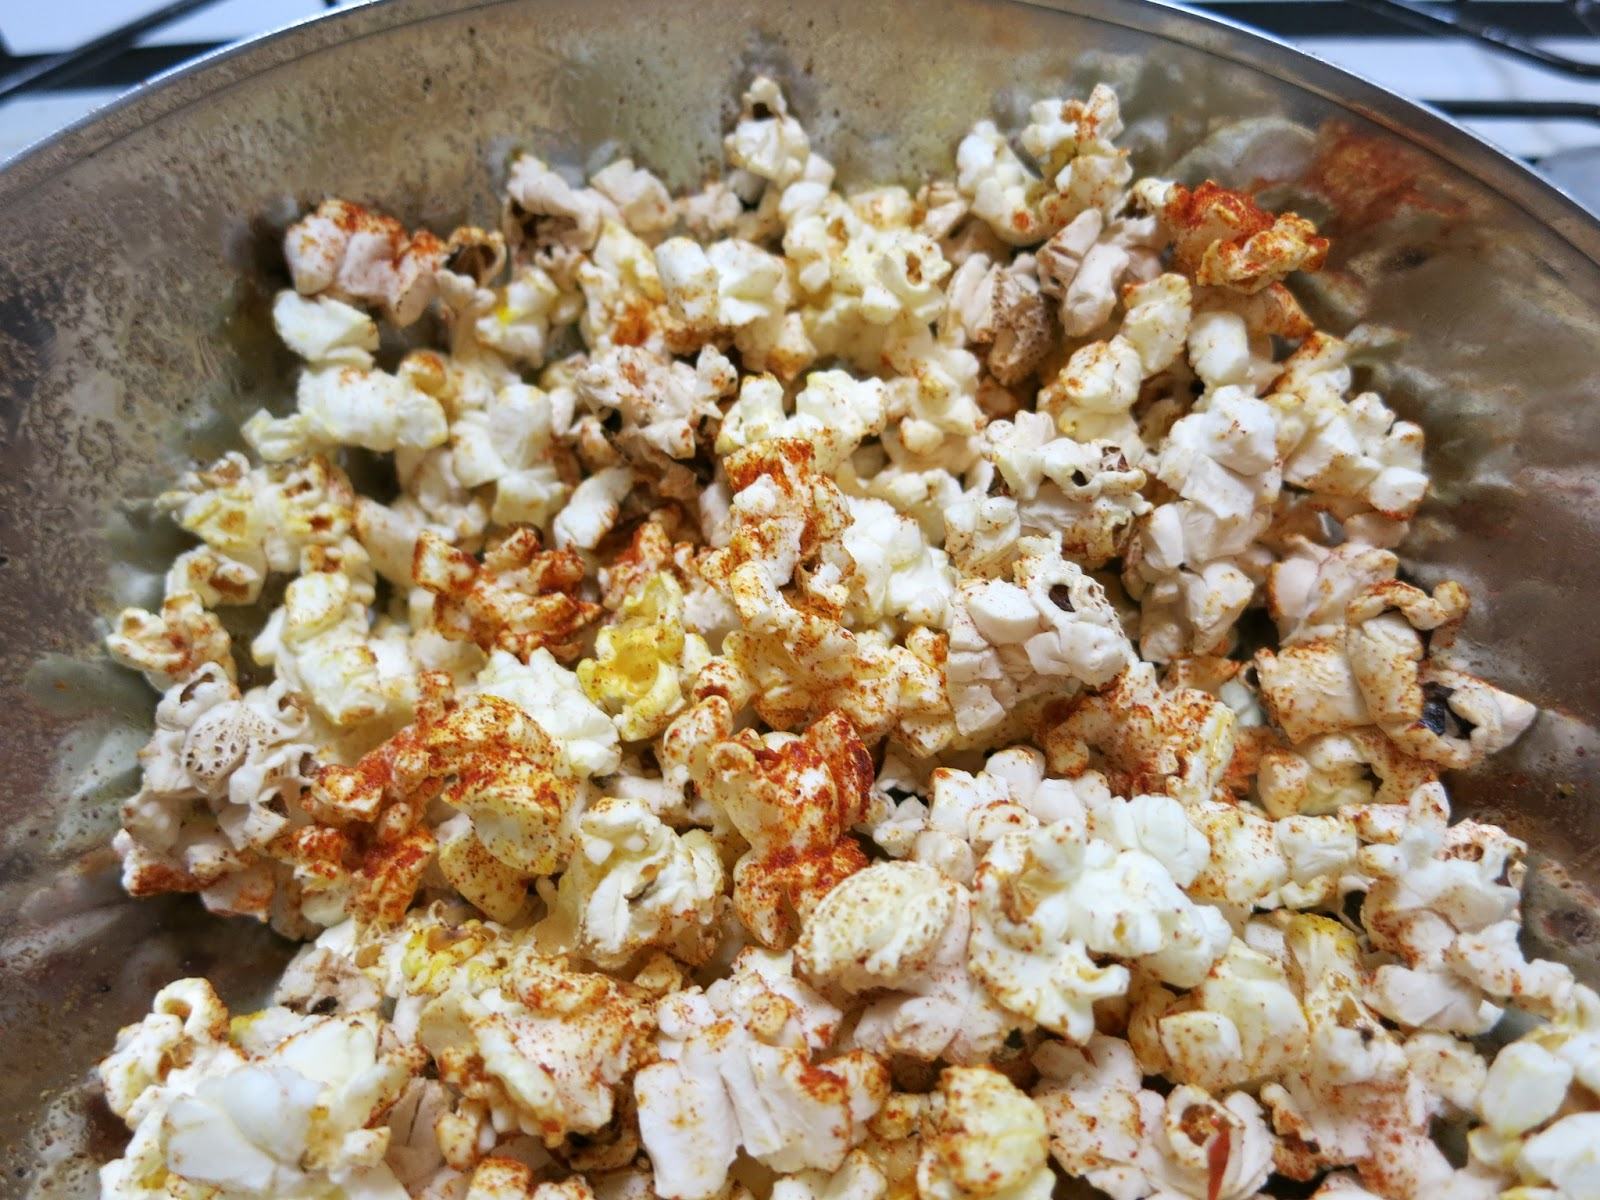 Sweet Paprika Chili Flake Popcorn